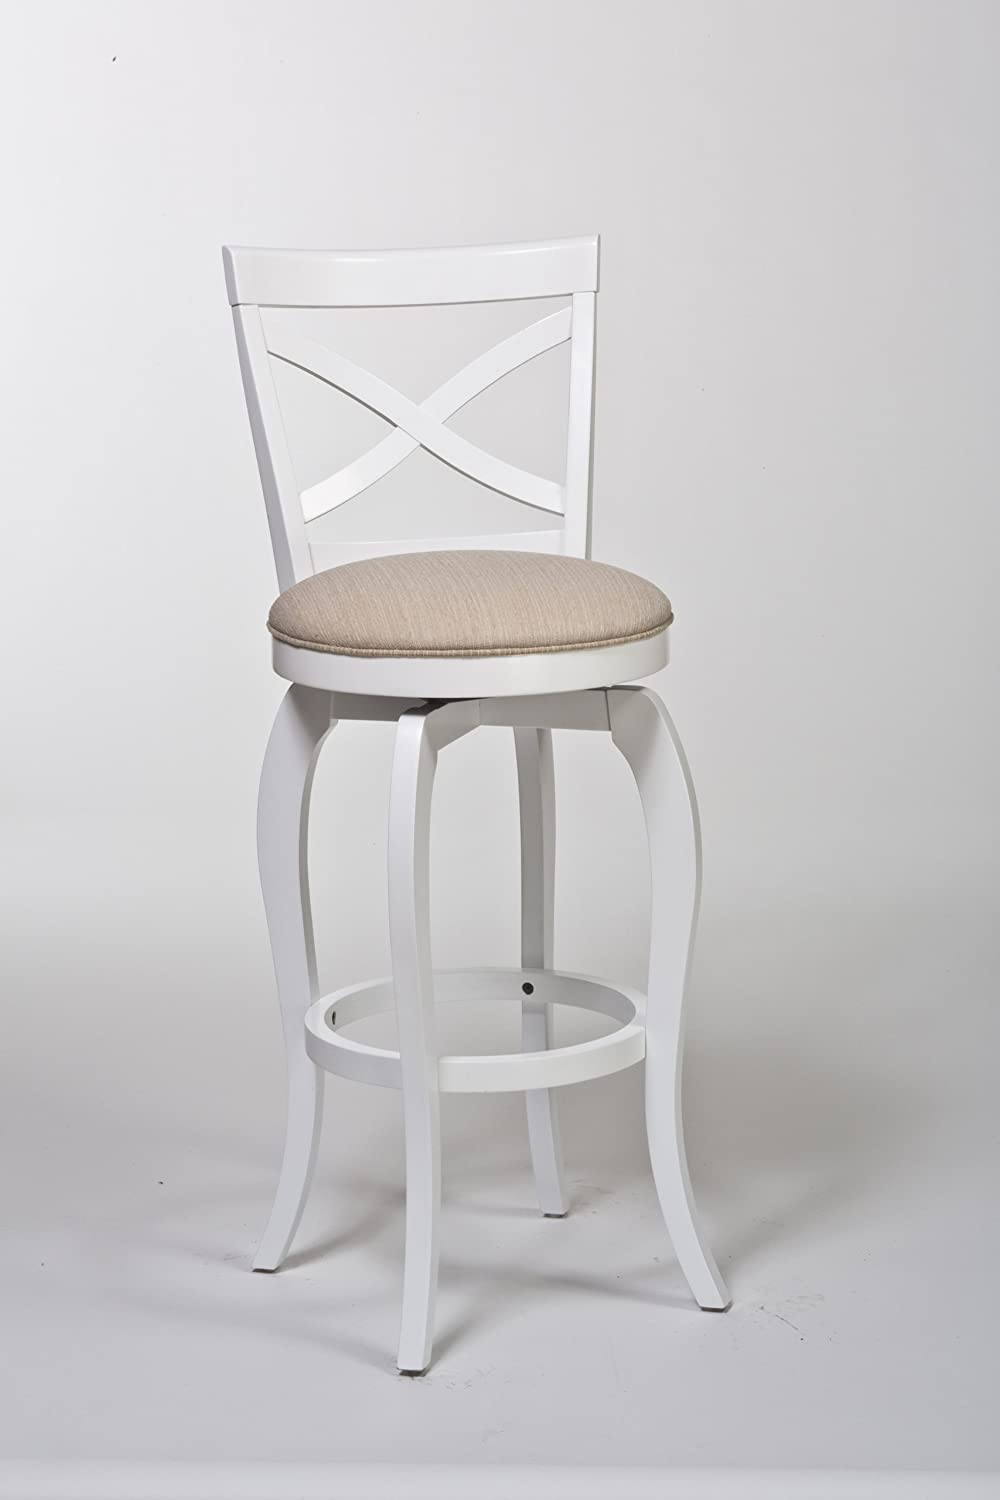 Superb Amazon.com: Hillsdale Furniture 5304 830 Ellendale Swivel Bar Stool In White,:  Kitchen U0026 Dining